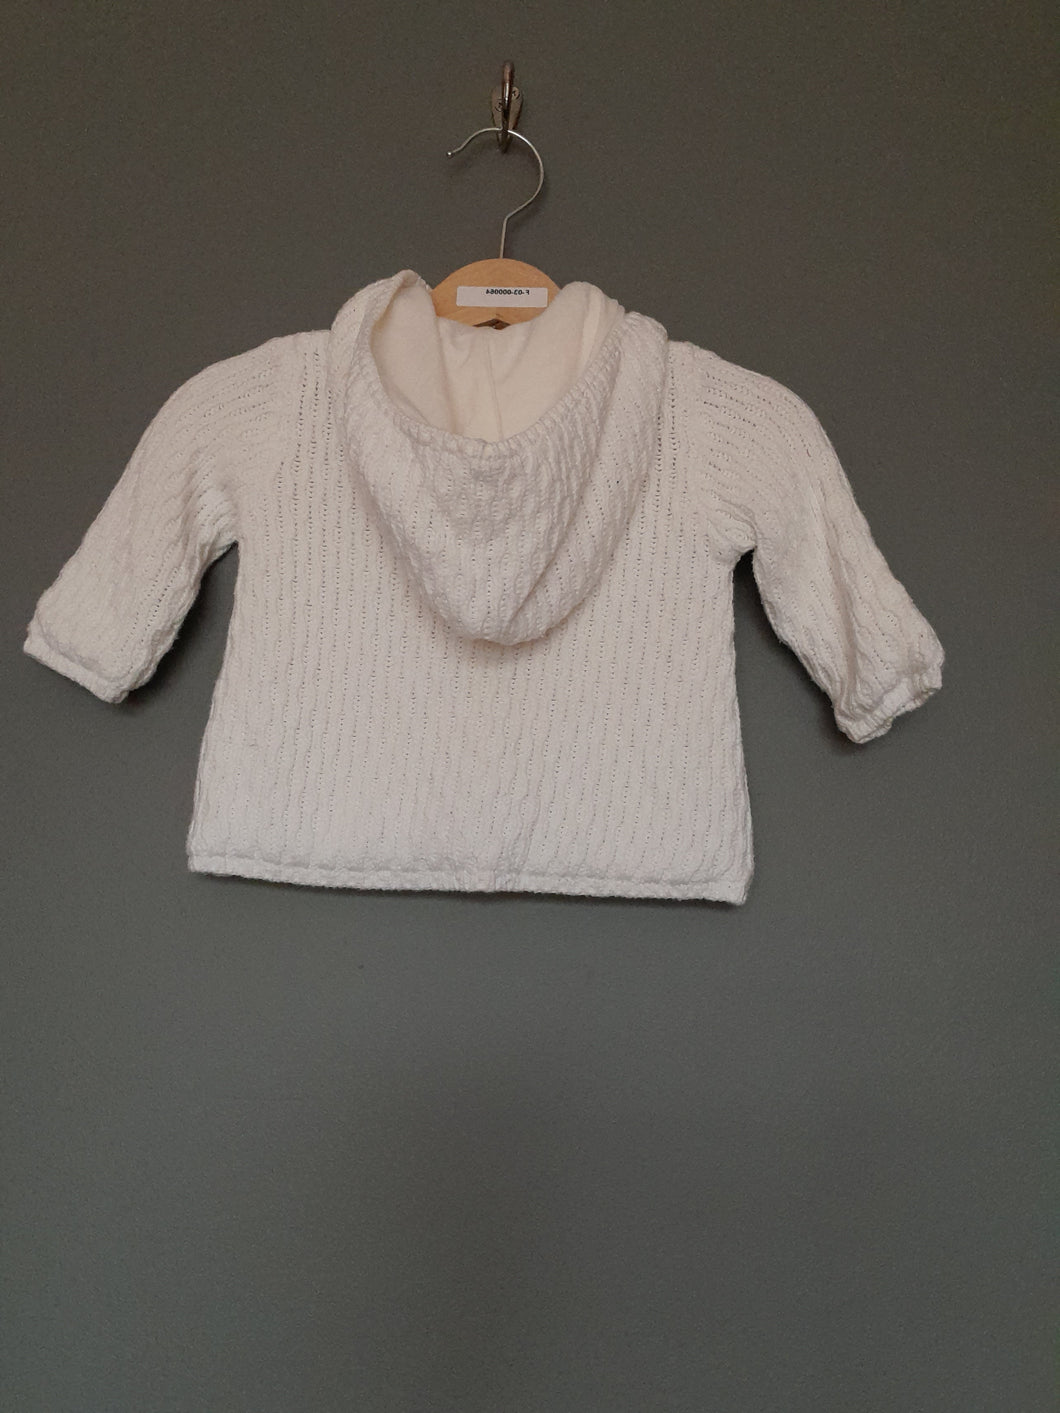 0-3 months cream knitted hooded cardigan